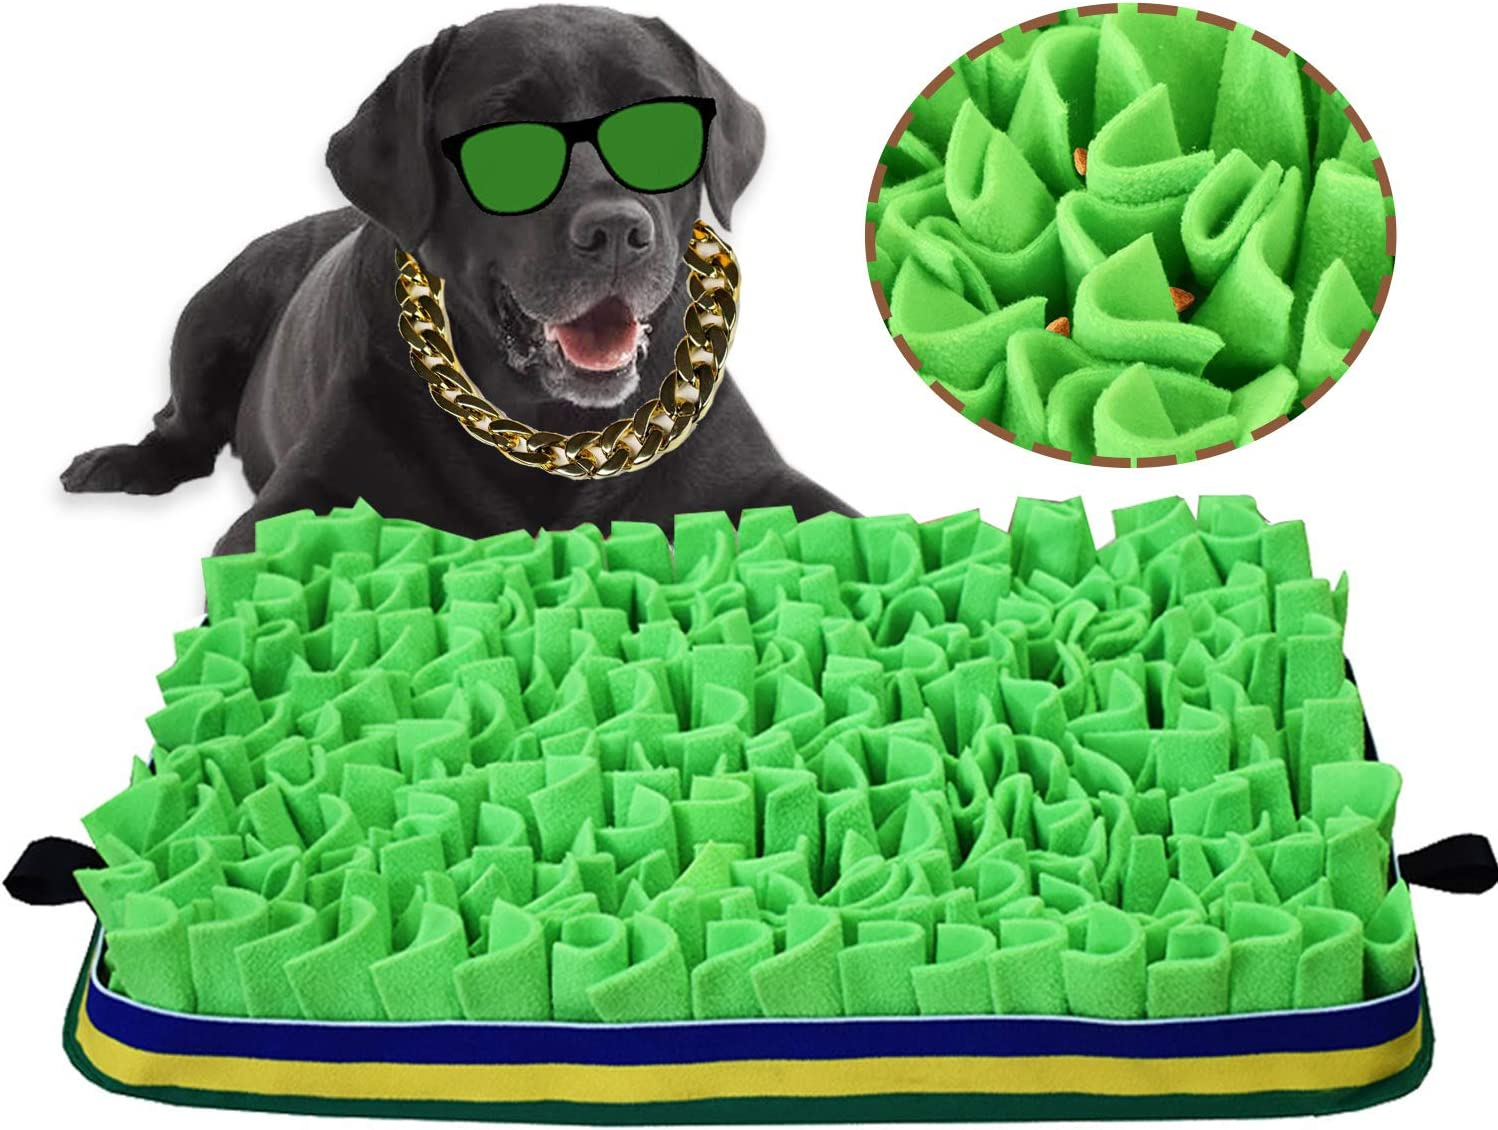 Snuffle Mat for Dogs, Pet Sniffing Mat Training Snack Pad Slow Food Decompression Tool Encourage Dogs Foraging Skills Training Blanket